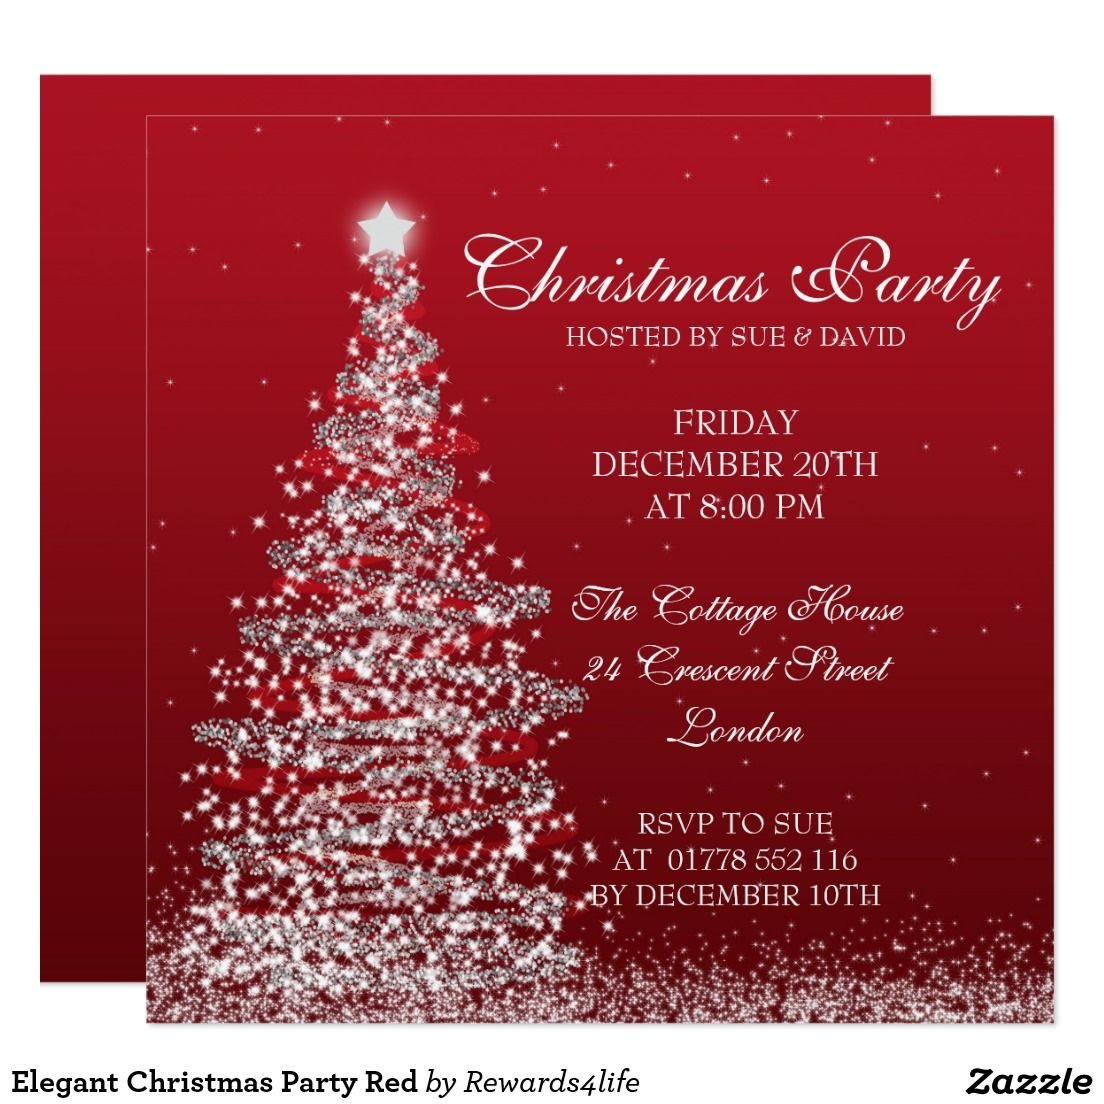 jingle mingle christmas party glitter invitation christmas elegant christmas party red card